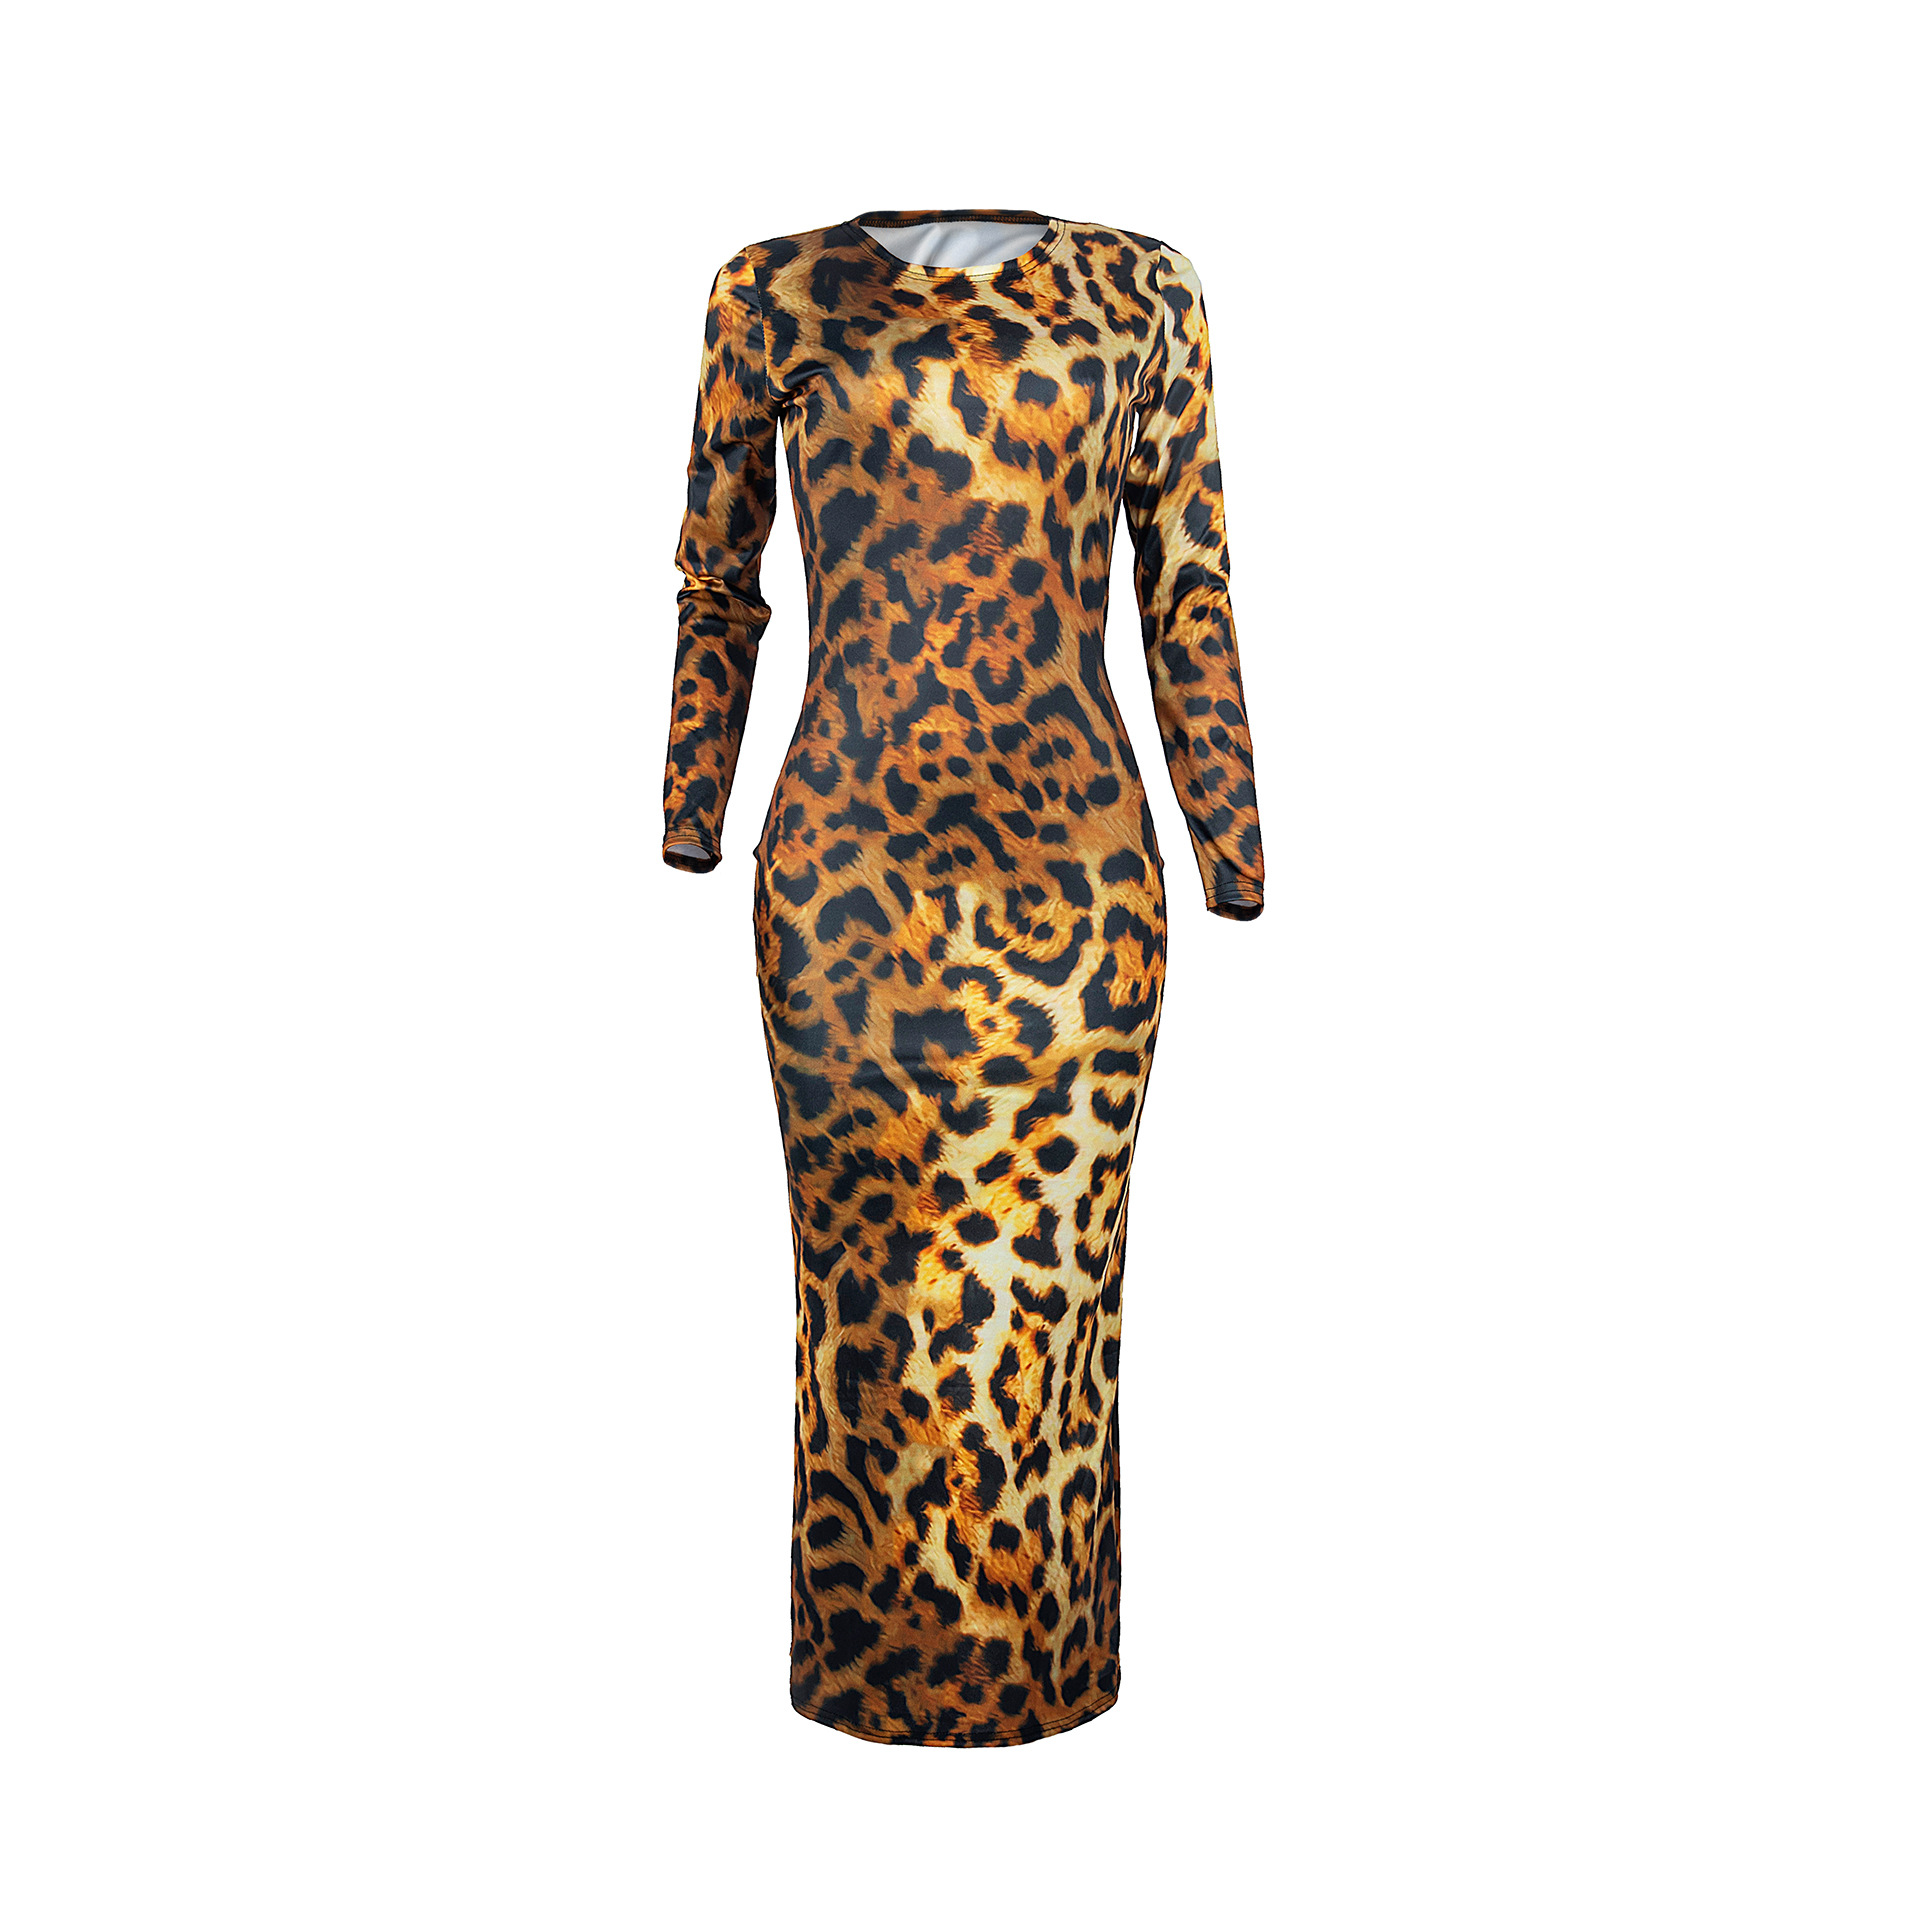 H33b20a00d72445b8866861f356adfca9o - Women Leopard Long Sleeve Dress Evening Party Dresses  Autumn Winter Bodycon Ankle-Length Slim Elegant High Waist  Plus Size